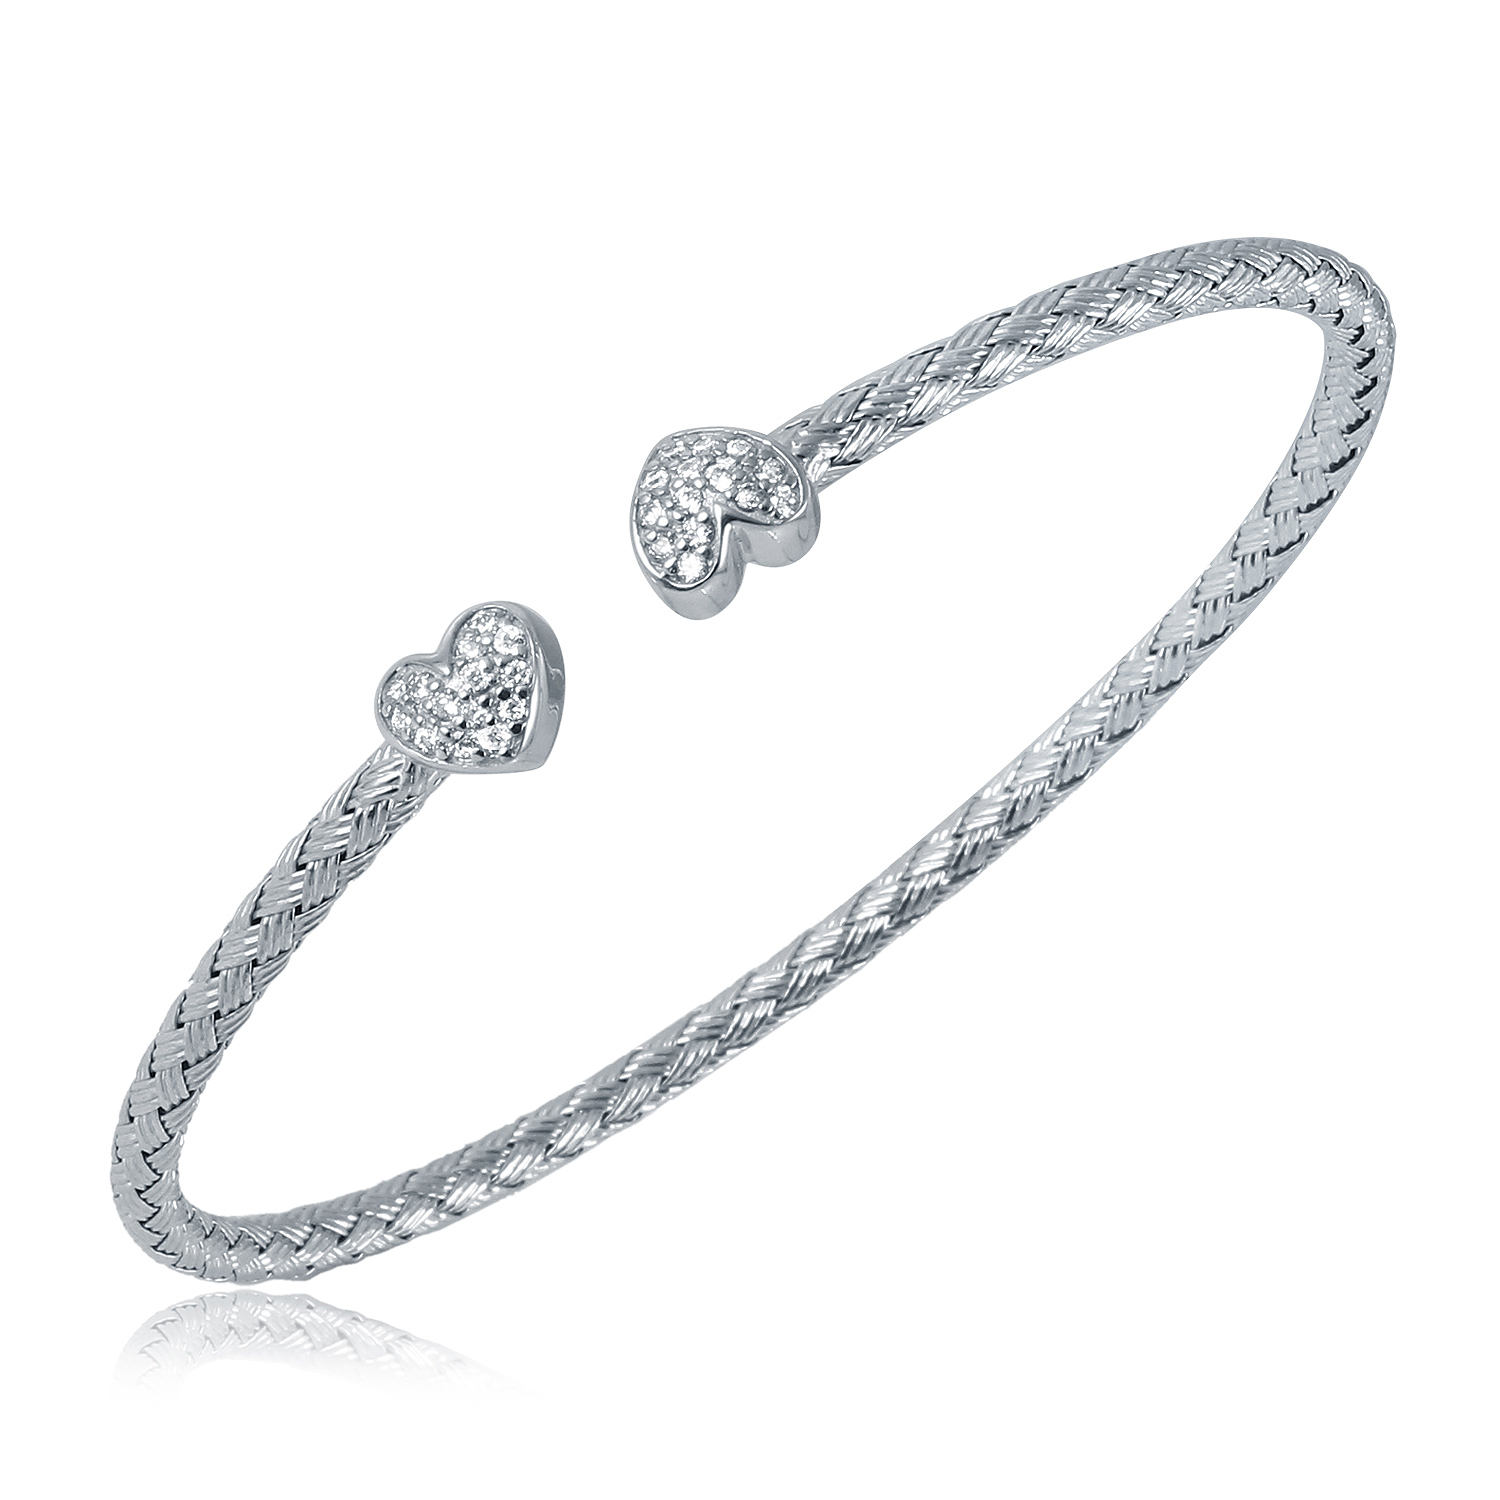 CHARLES GARNIER - Sterling Silver and CZ Heart Cap Cuff Bangle